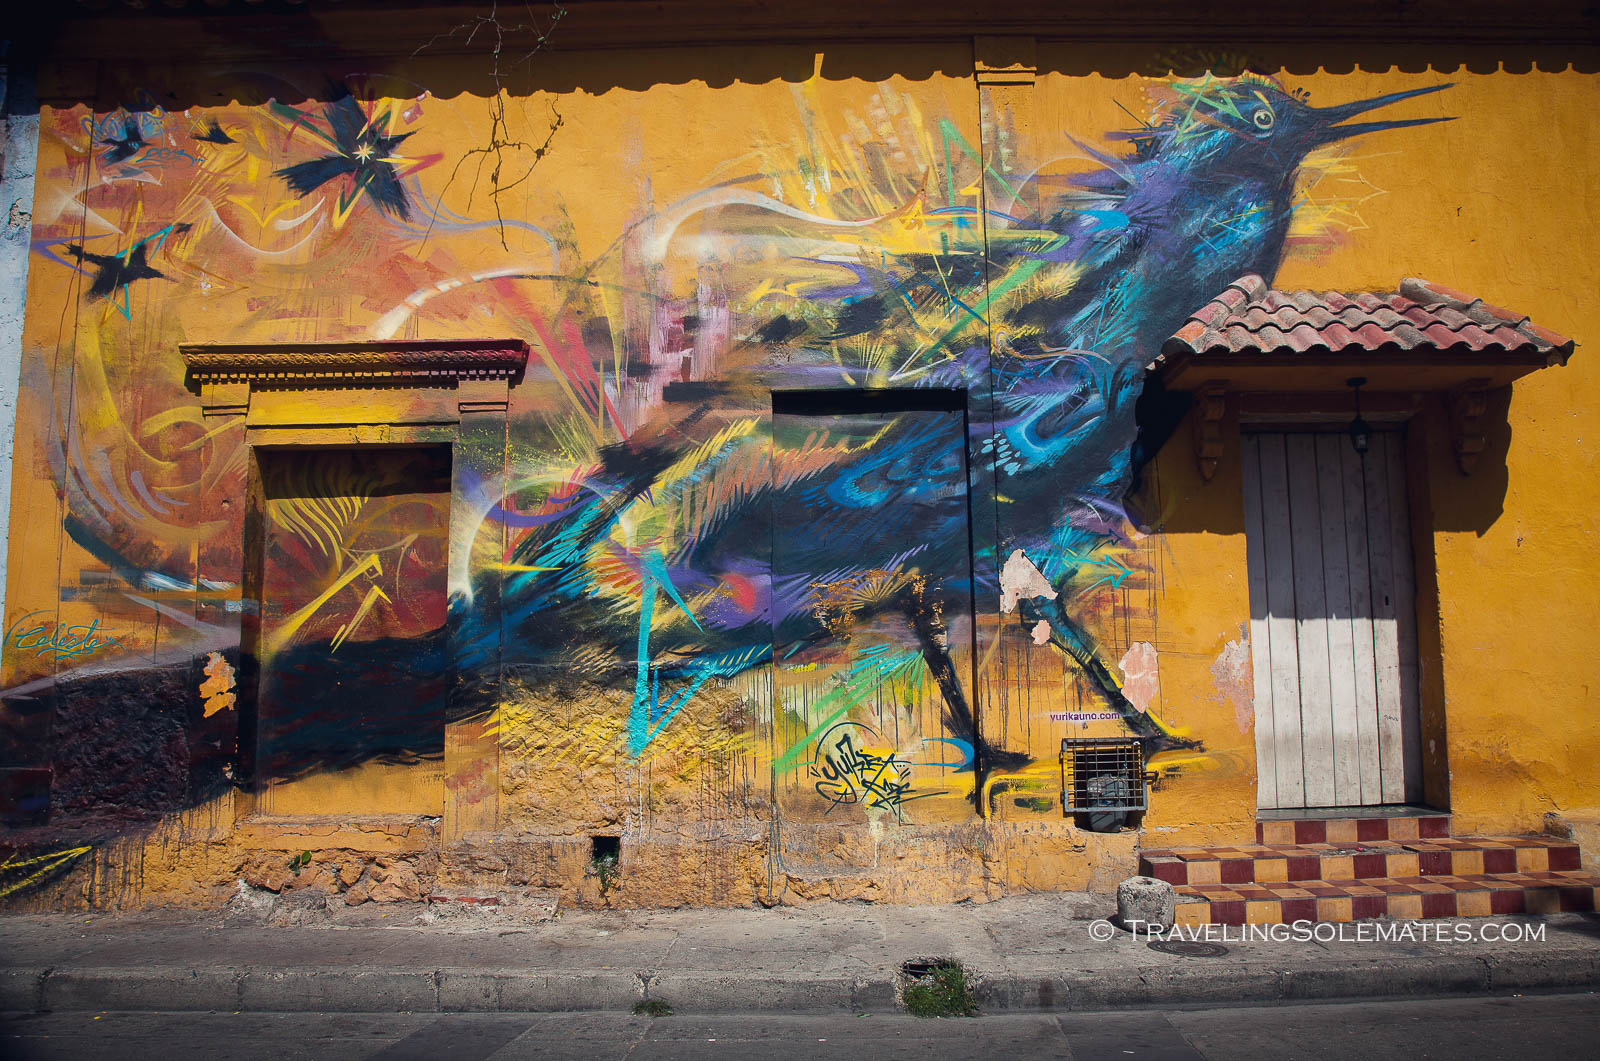 Street Art in Getsemani, Cartagena, Colombia